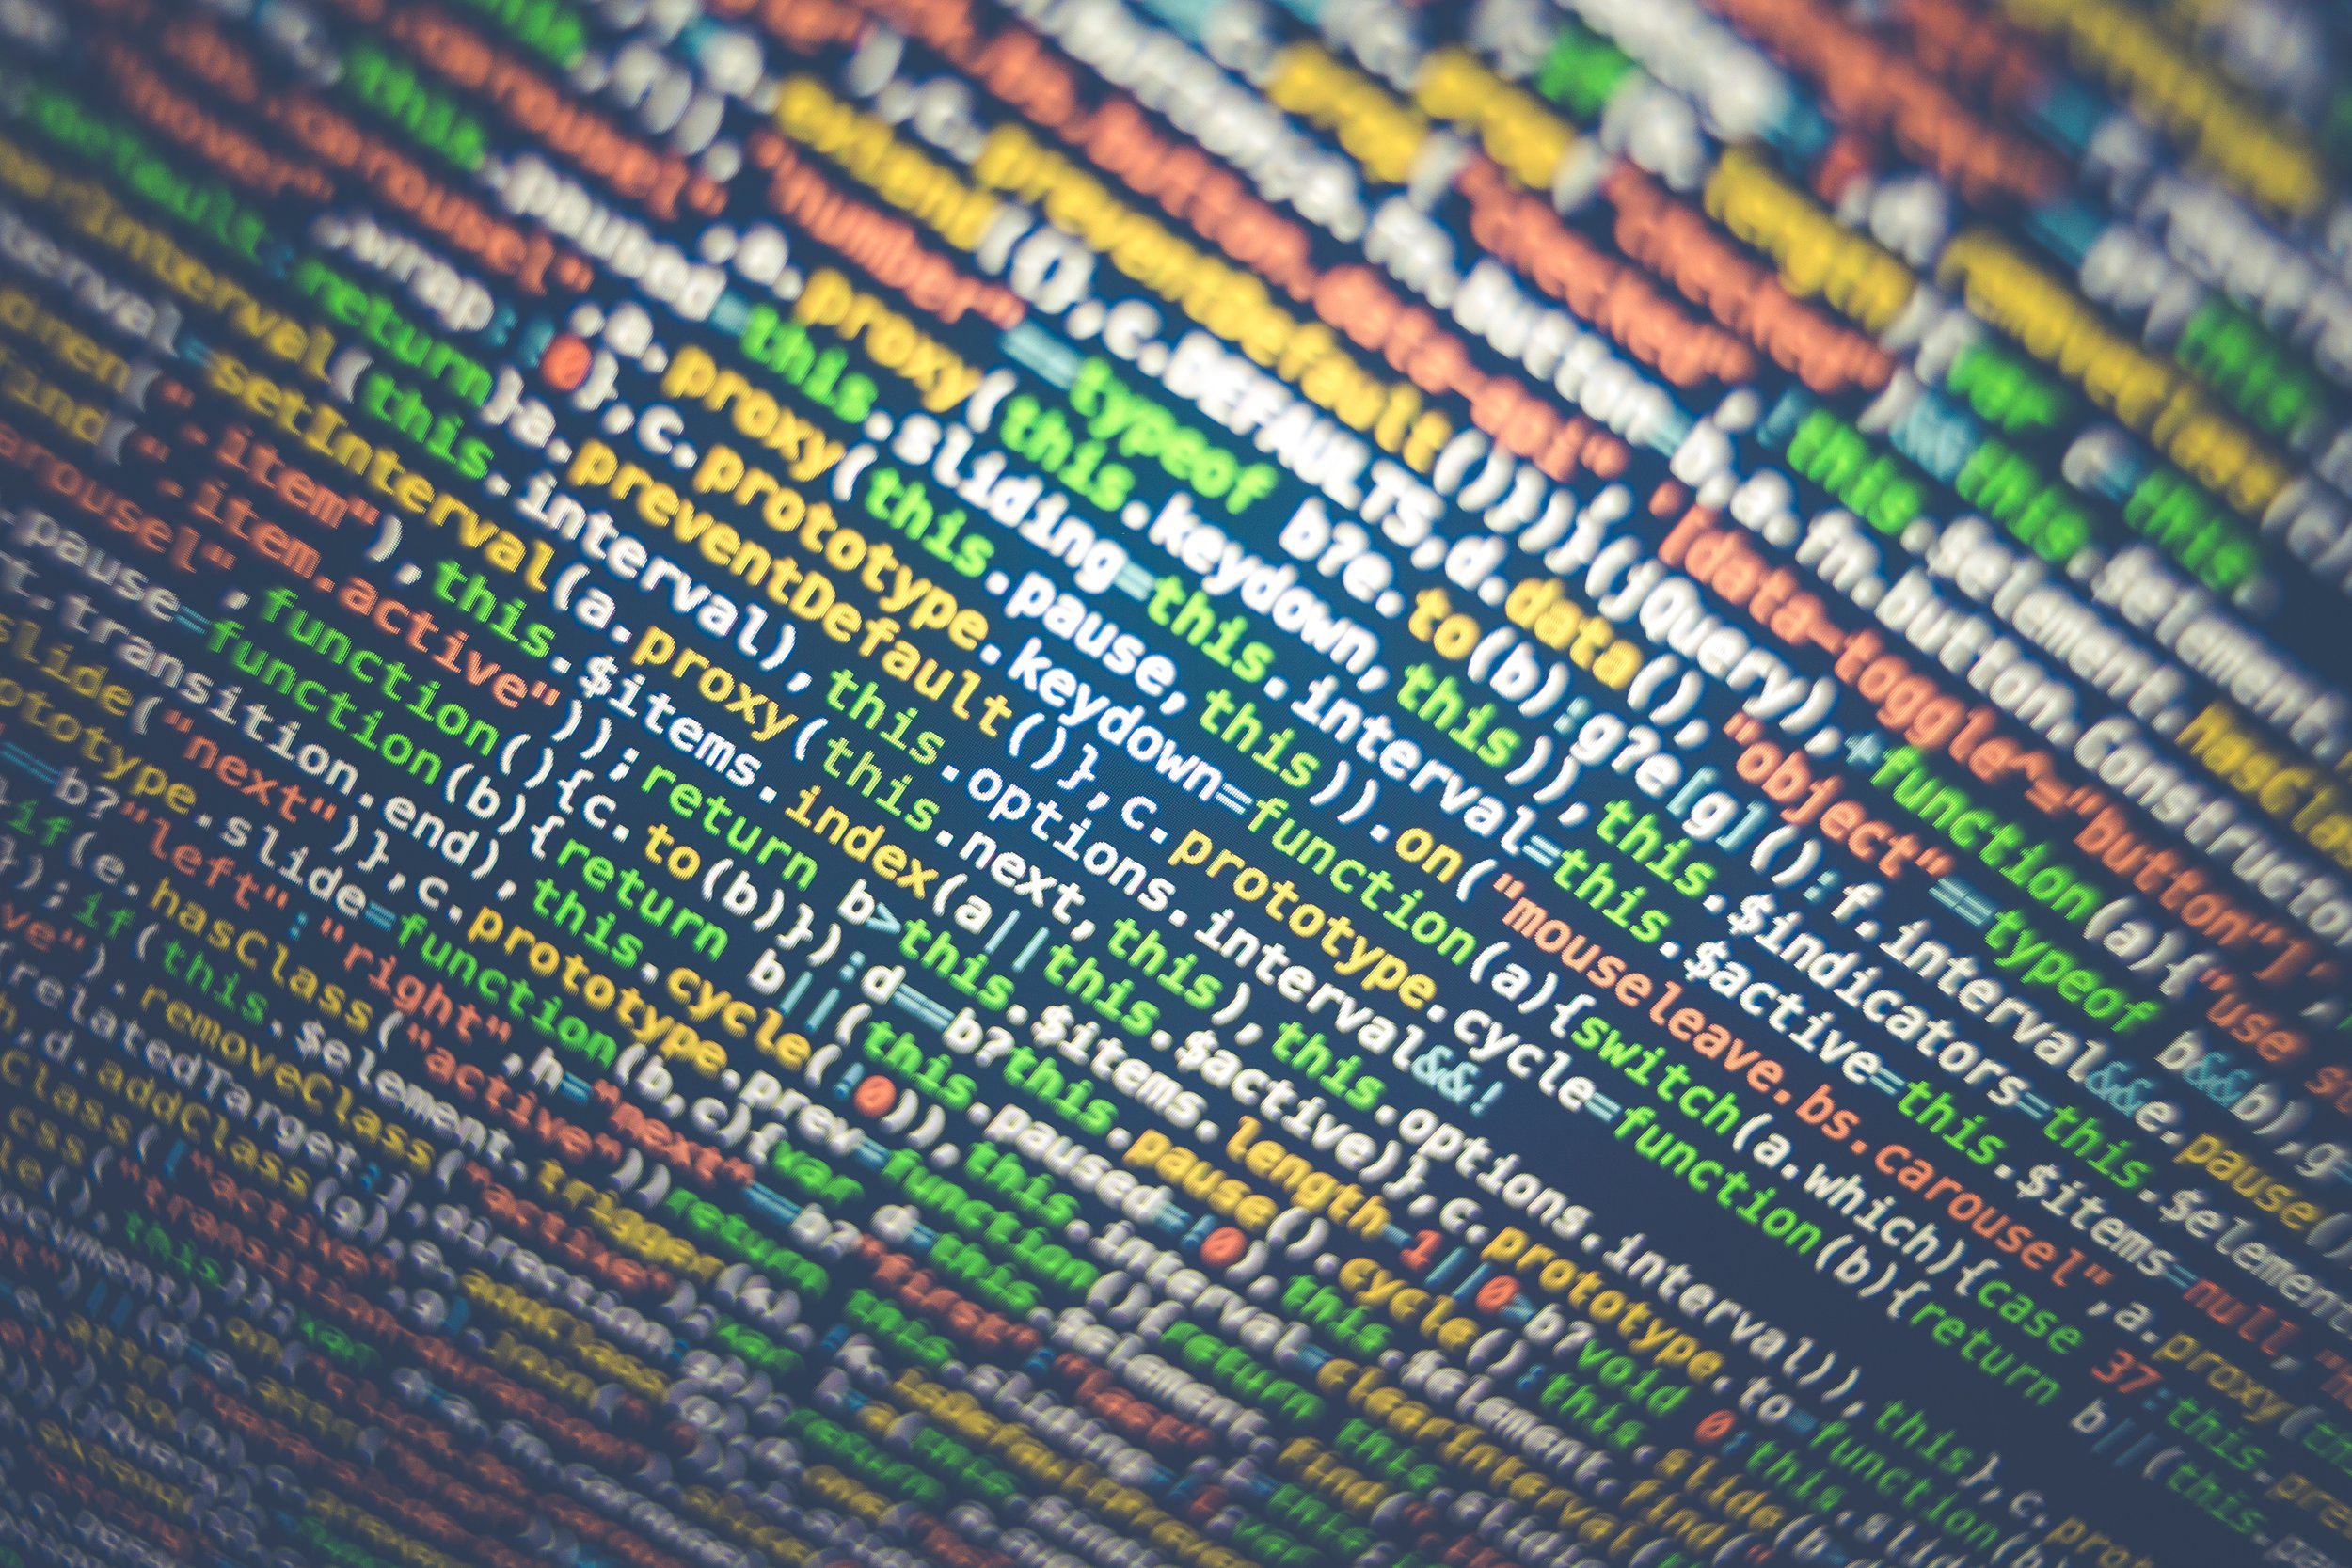 Photograph: Close up photograph of computer screen with lines of colorful code.